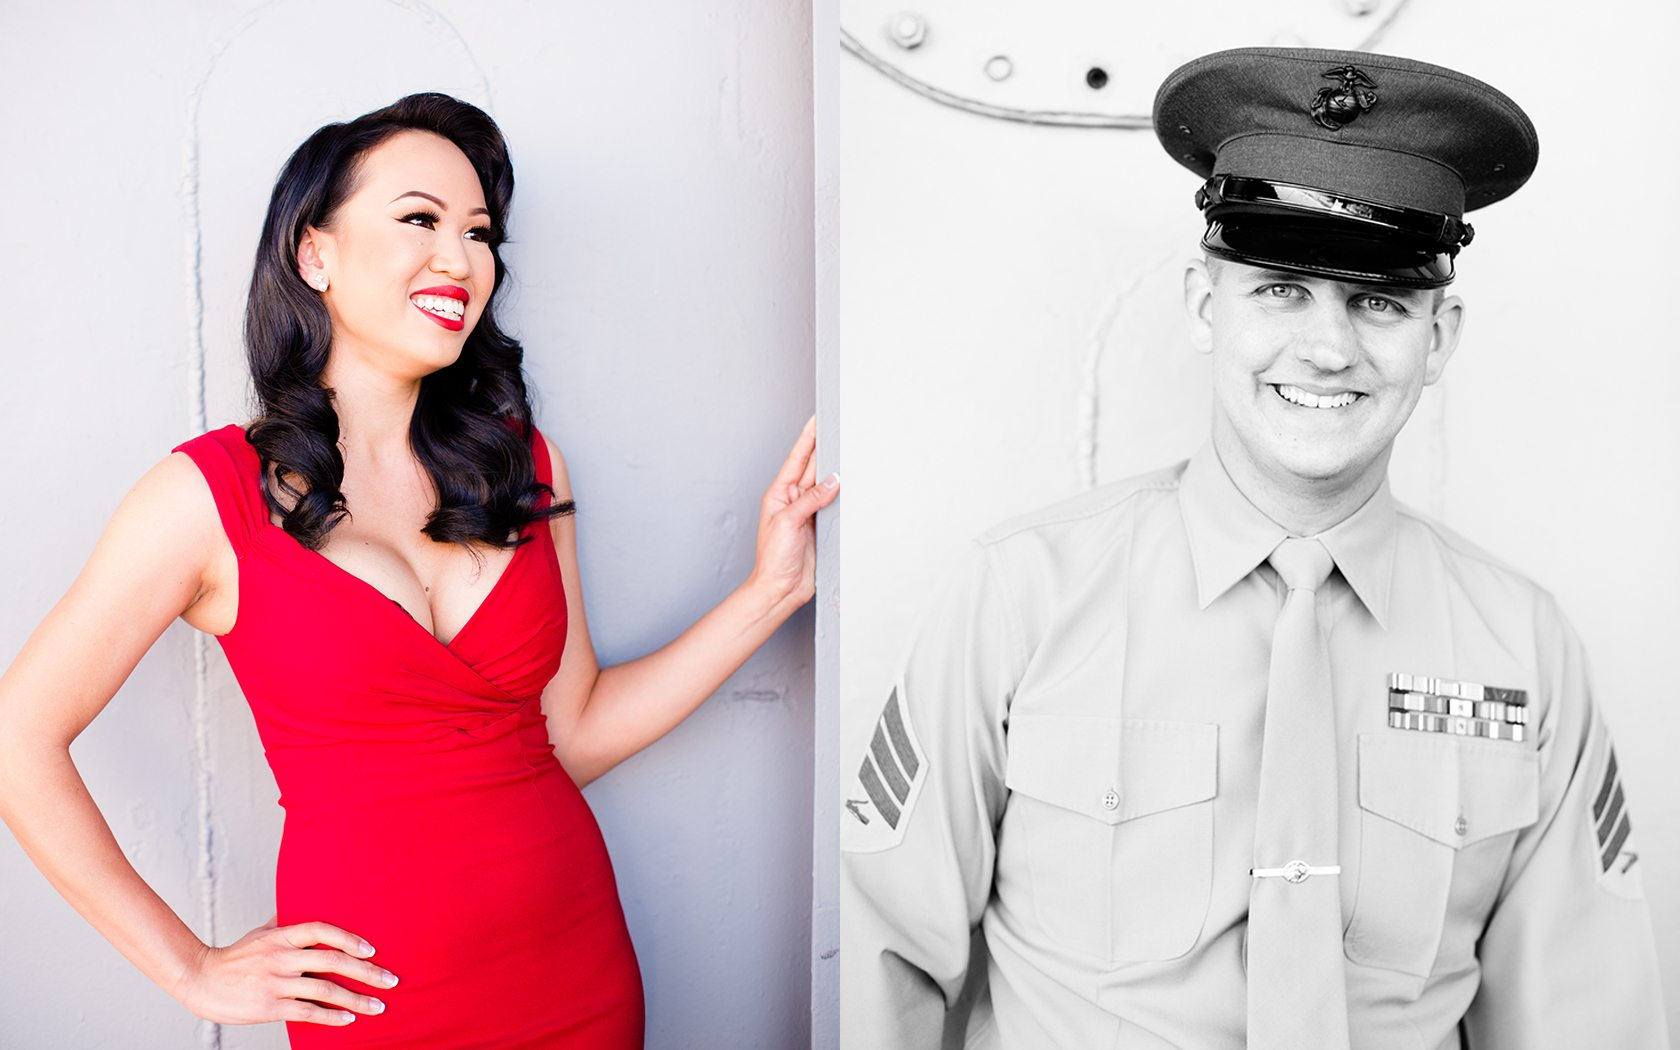 USS_Midway_Engagement_Session_10.jpg